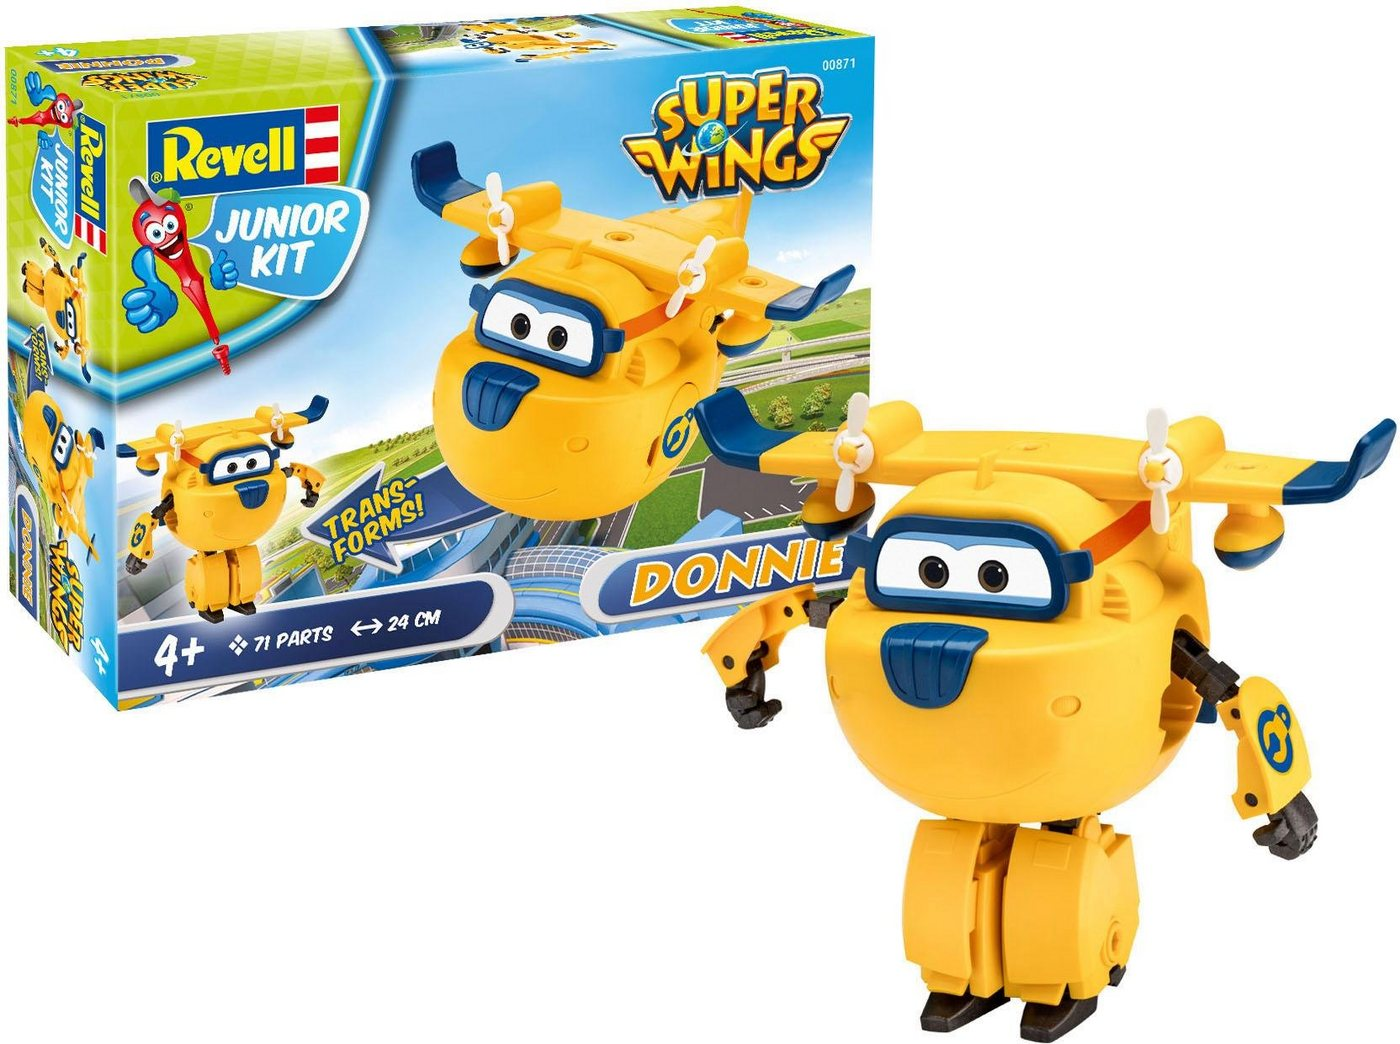 Revell Modellbausatz transformierbares Flugzeug, »Junior Kit Super Wings Donnie«